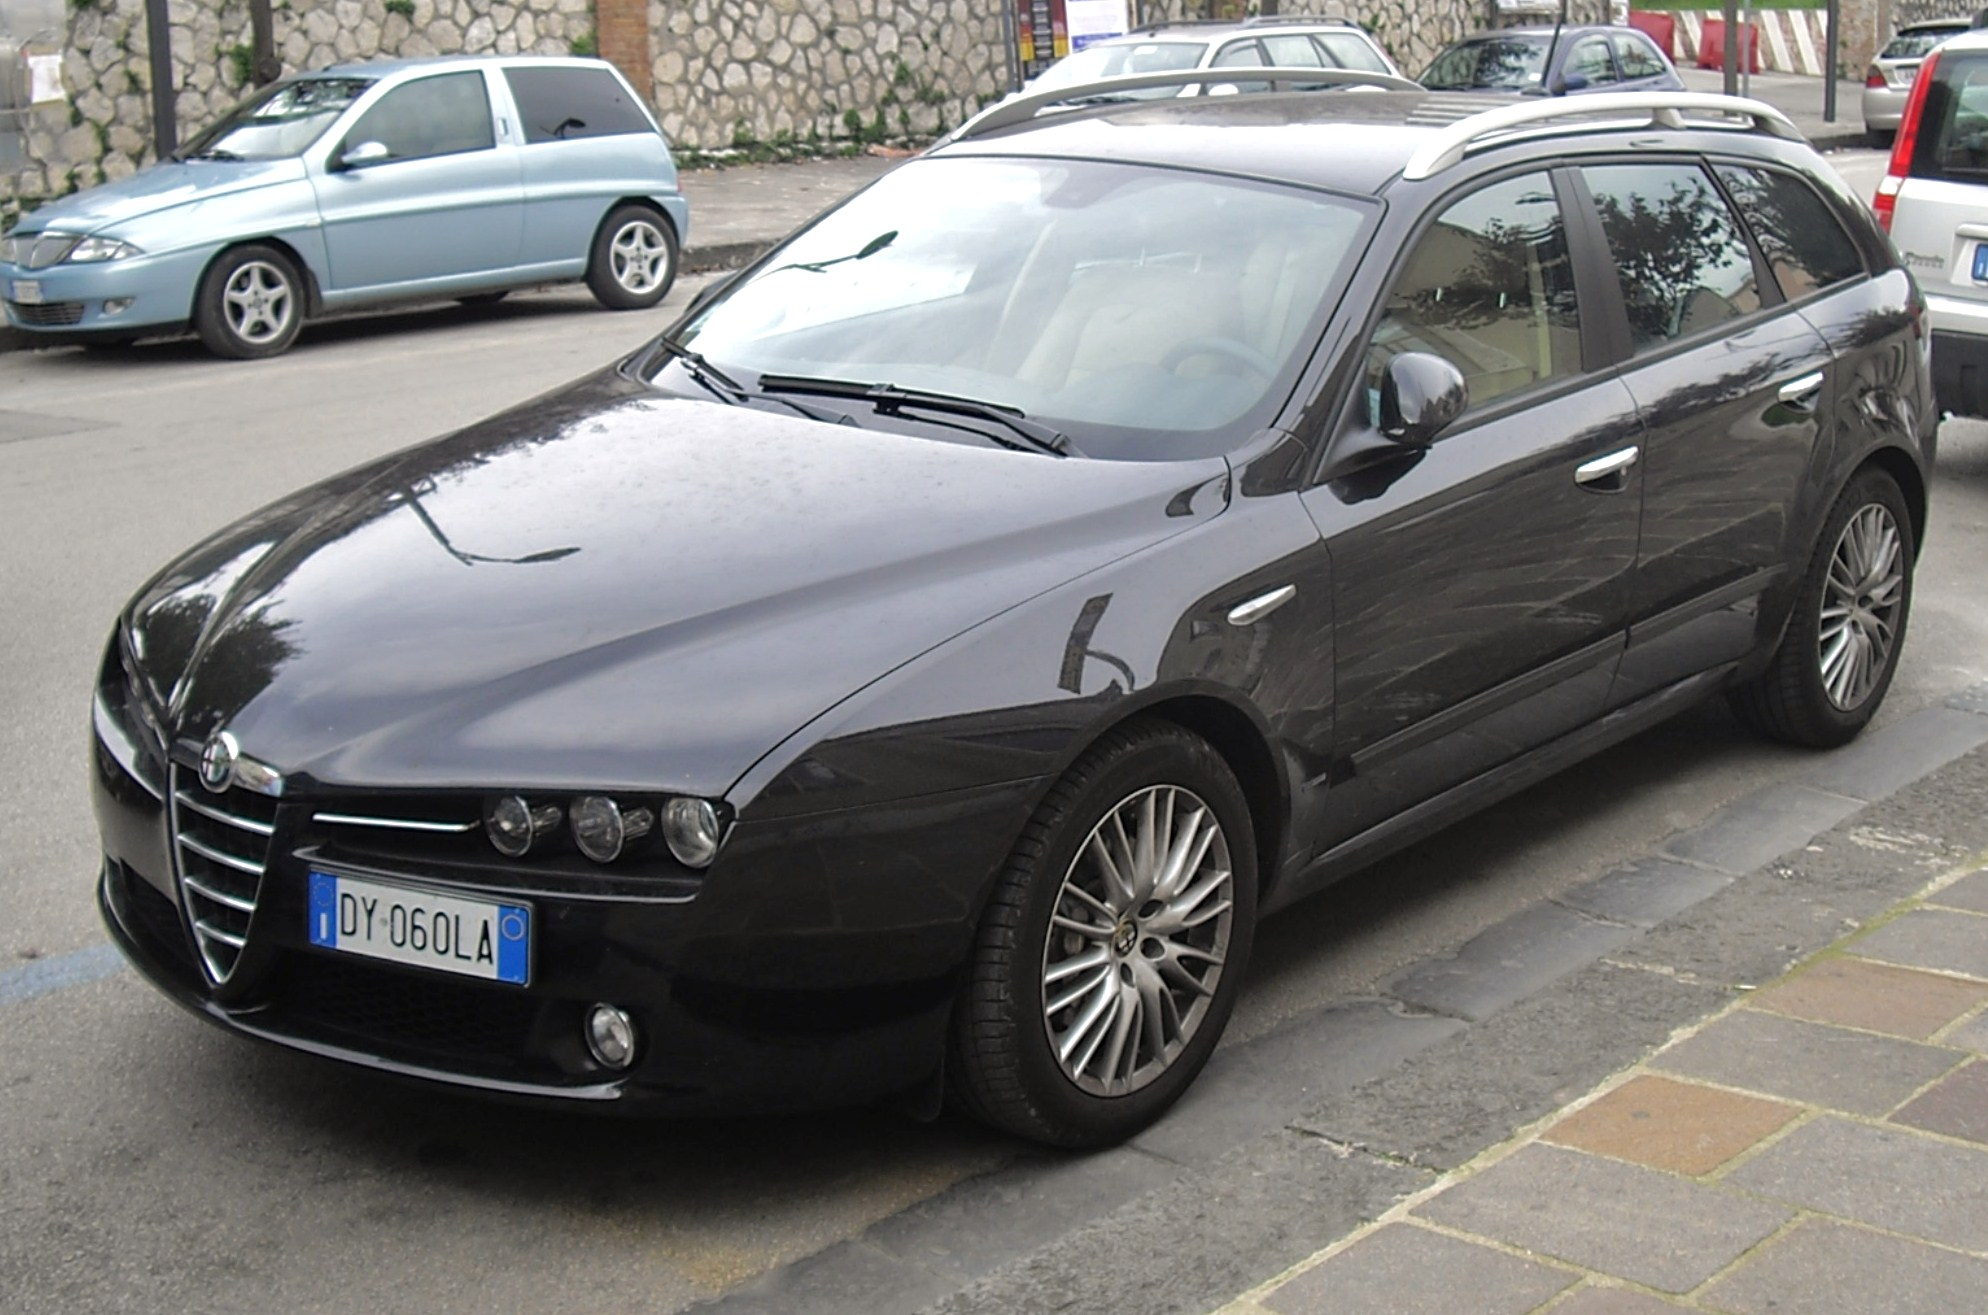 Alfa romeo 159 wikipedia it